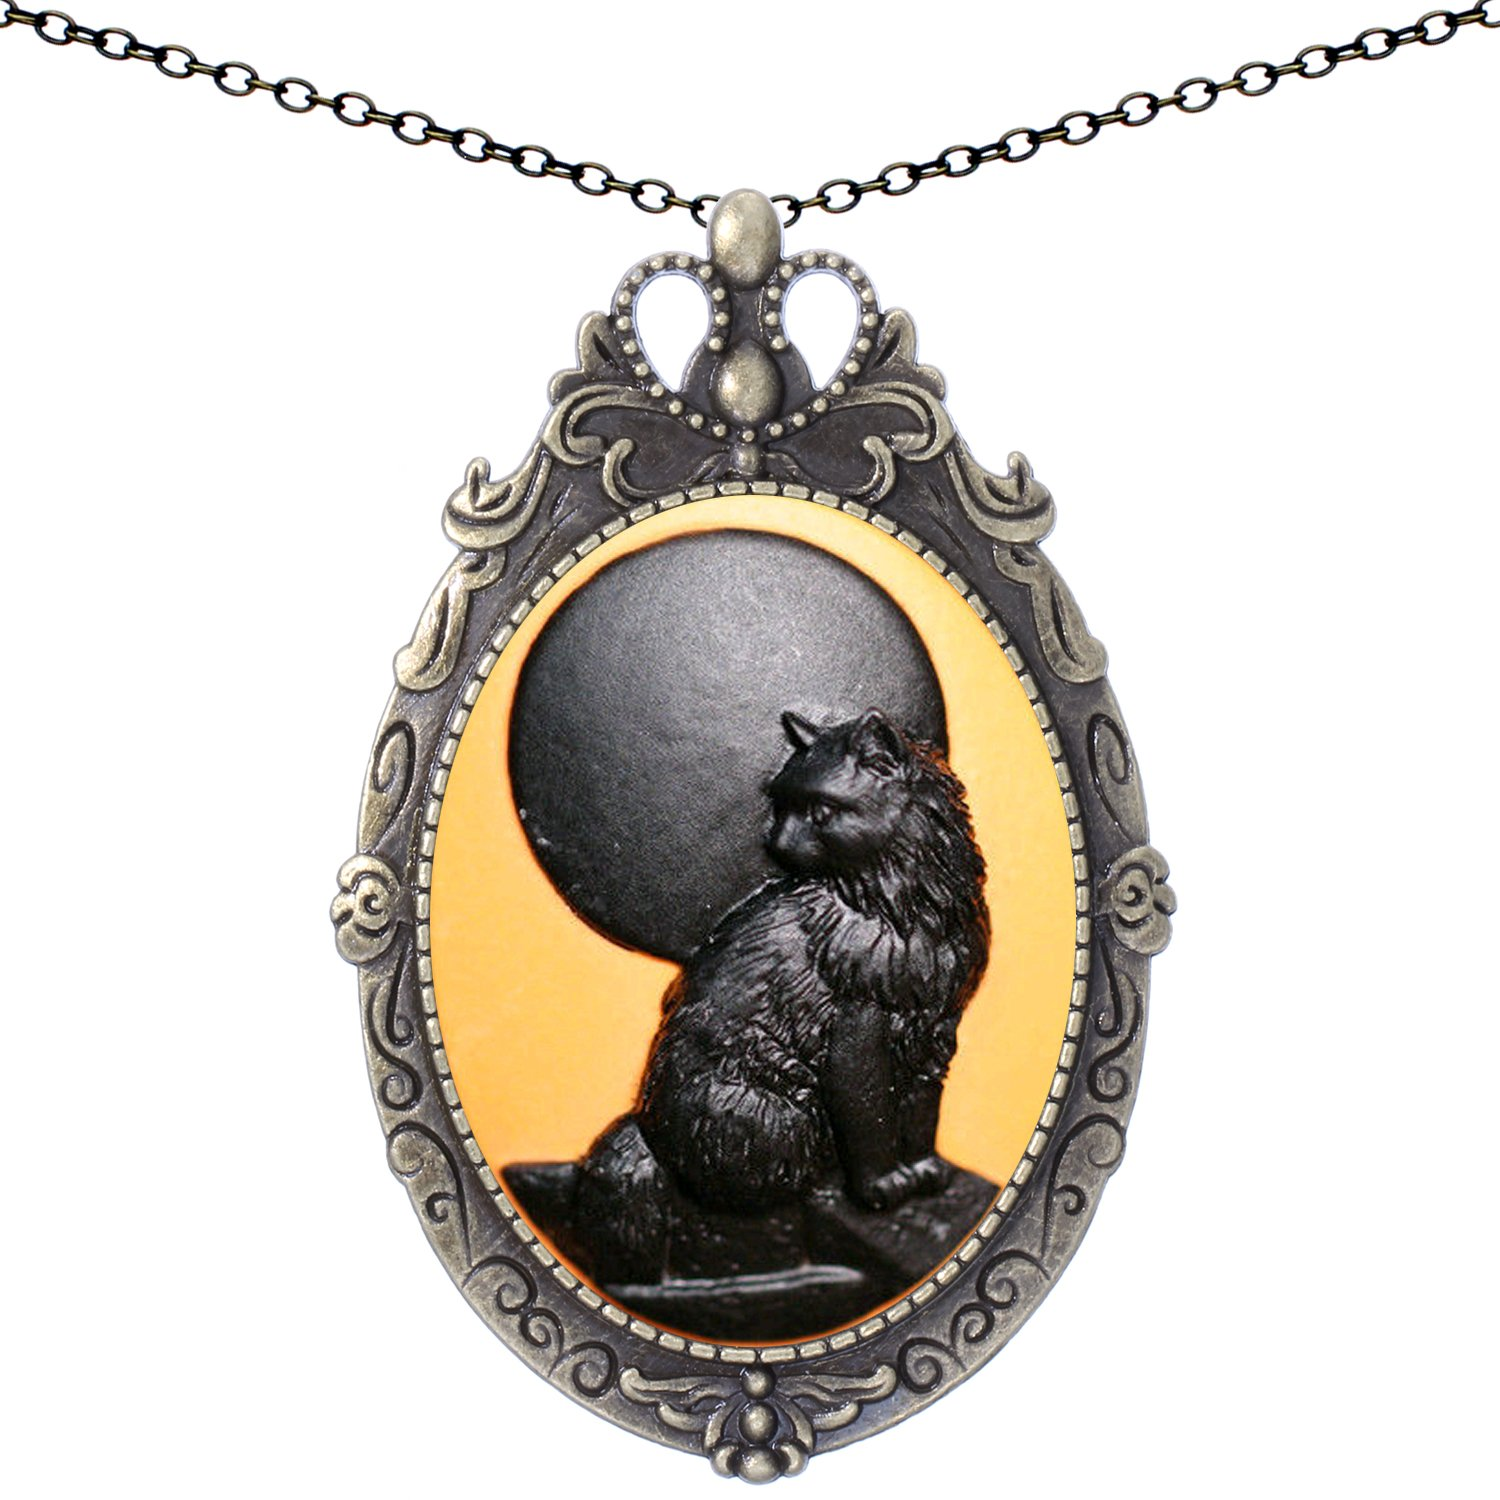 Black Cat Brooch Antique Brass Shield Shape Pendant Necklace Two Way Jewelry 20'' Chain Pouch Gift